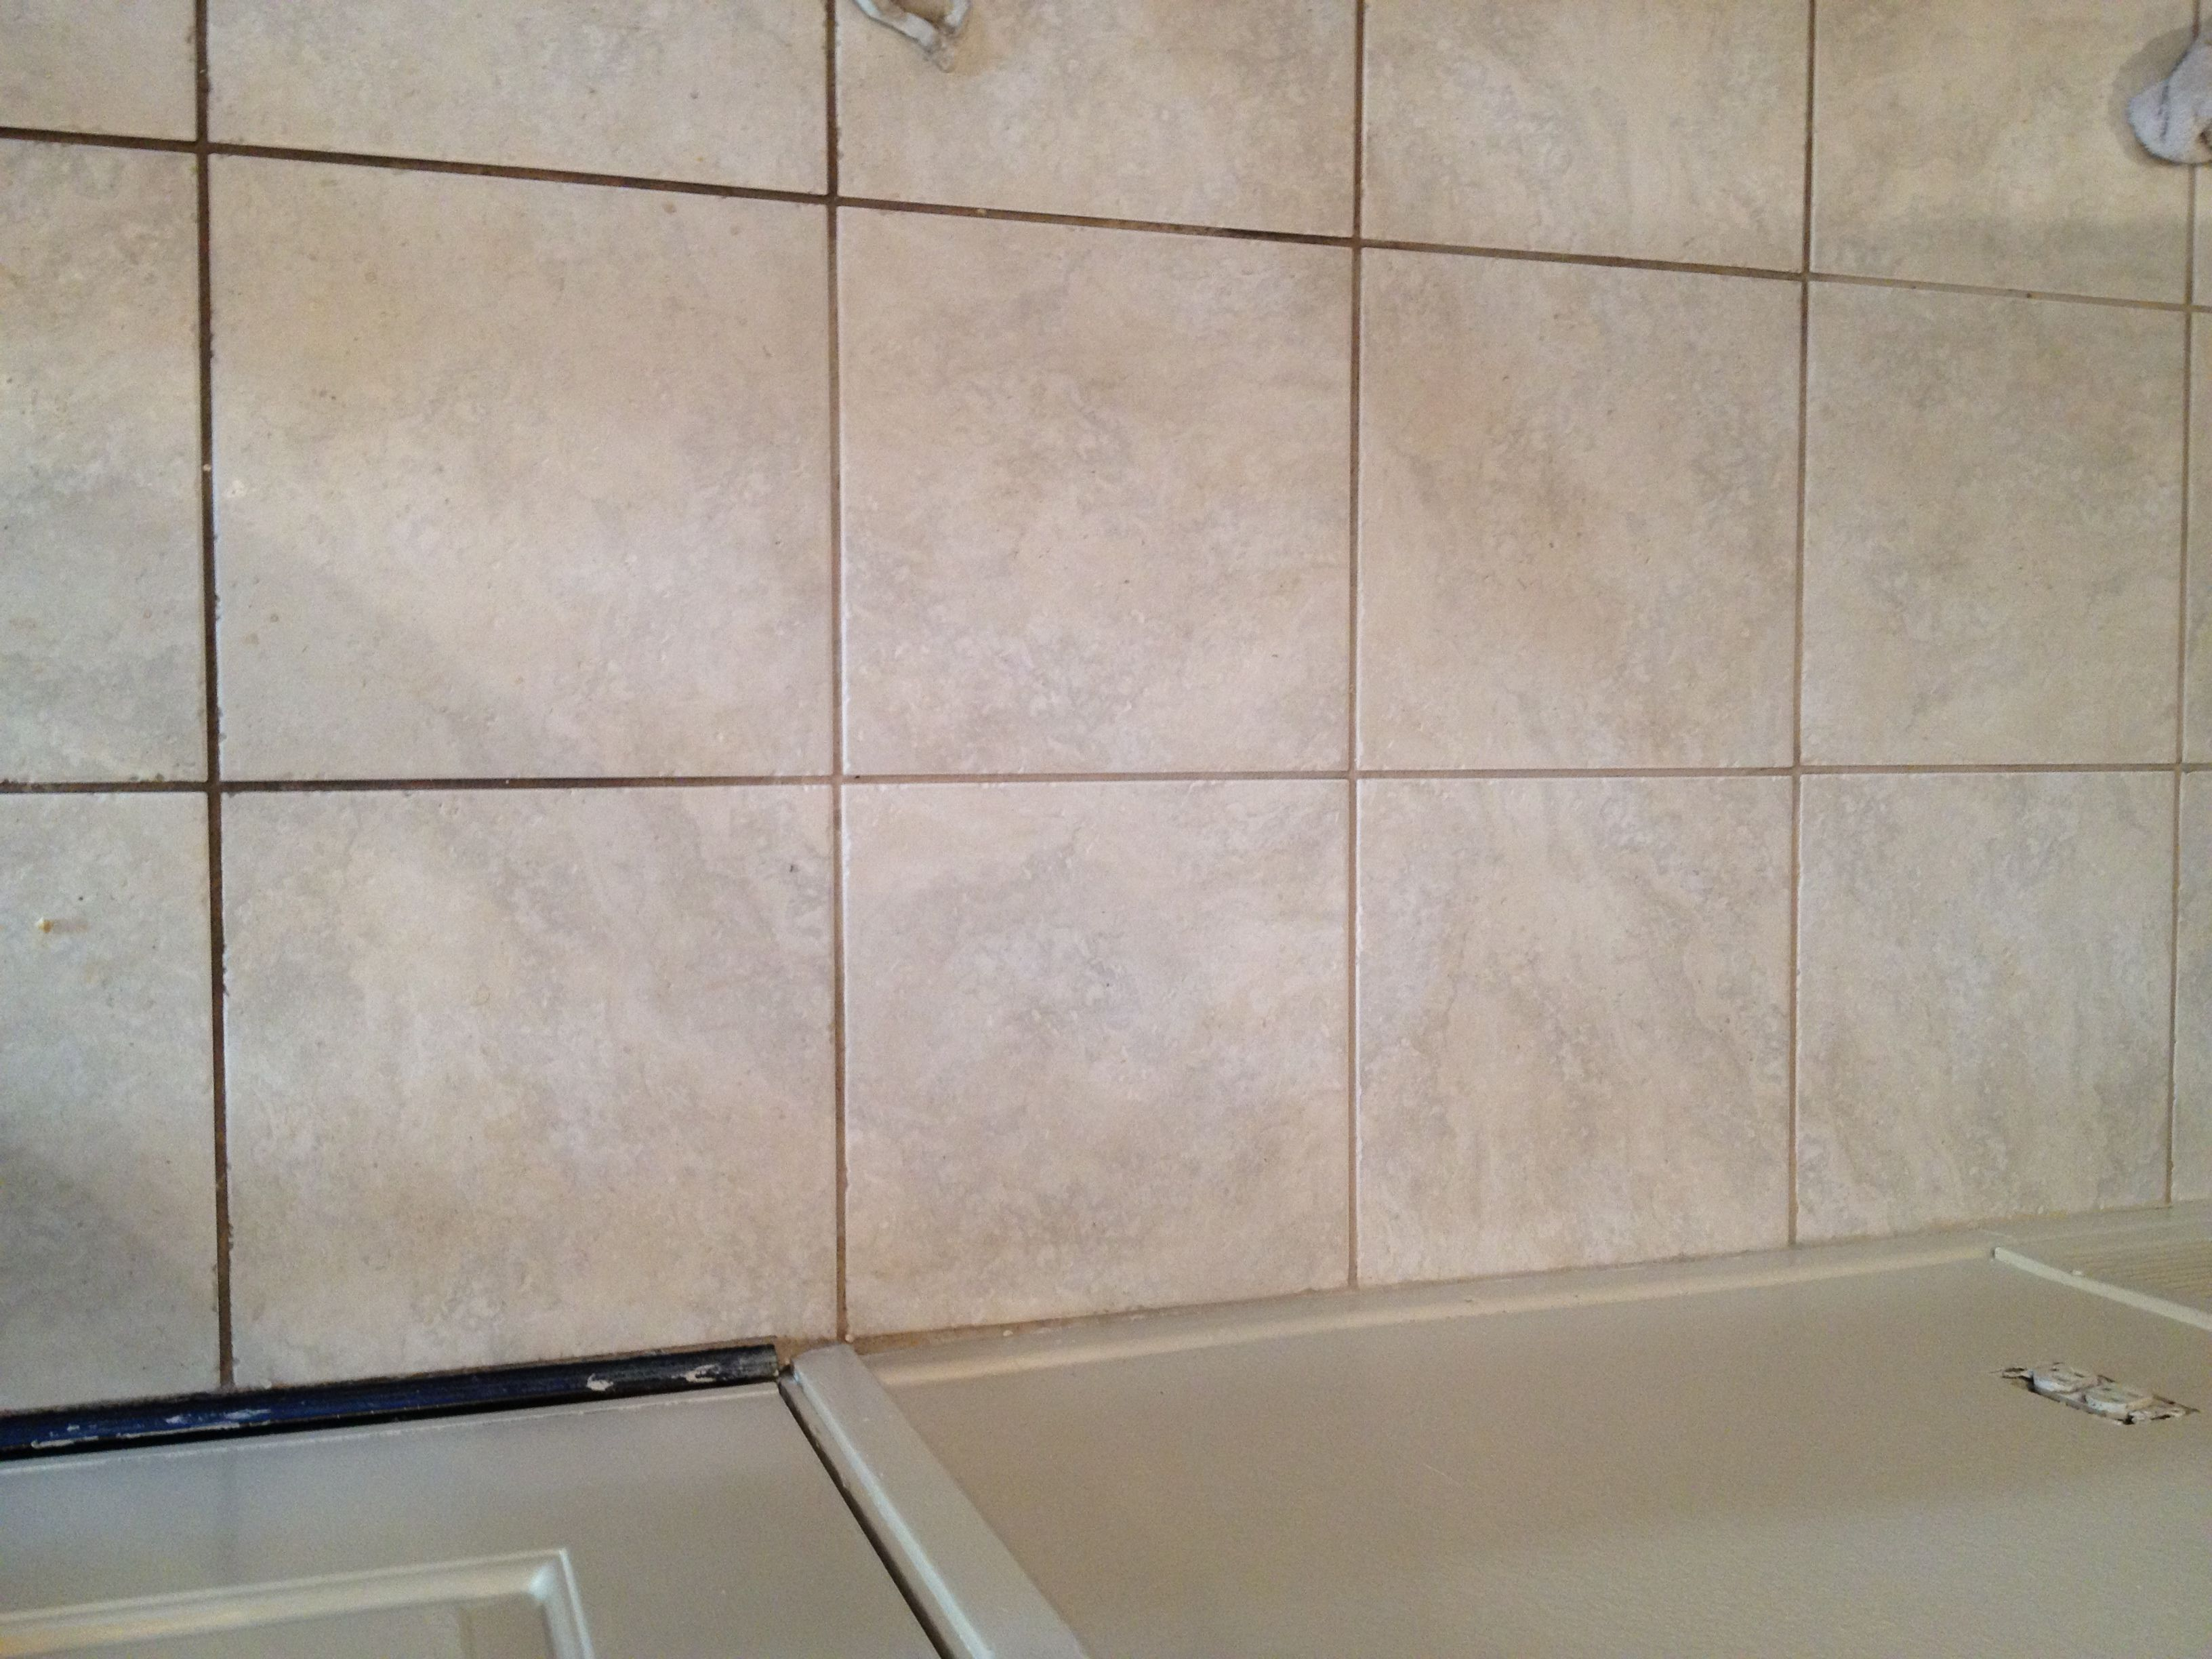 how to make bathroom grout white again